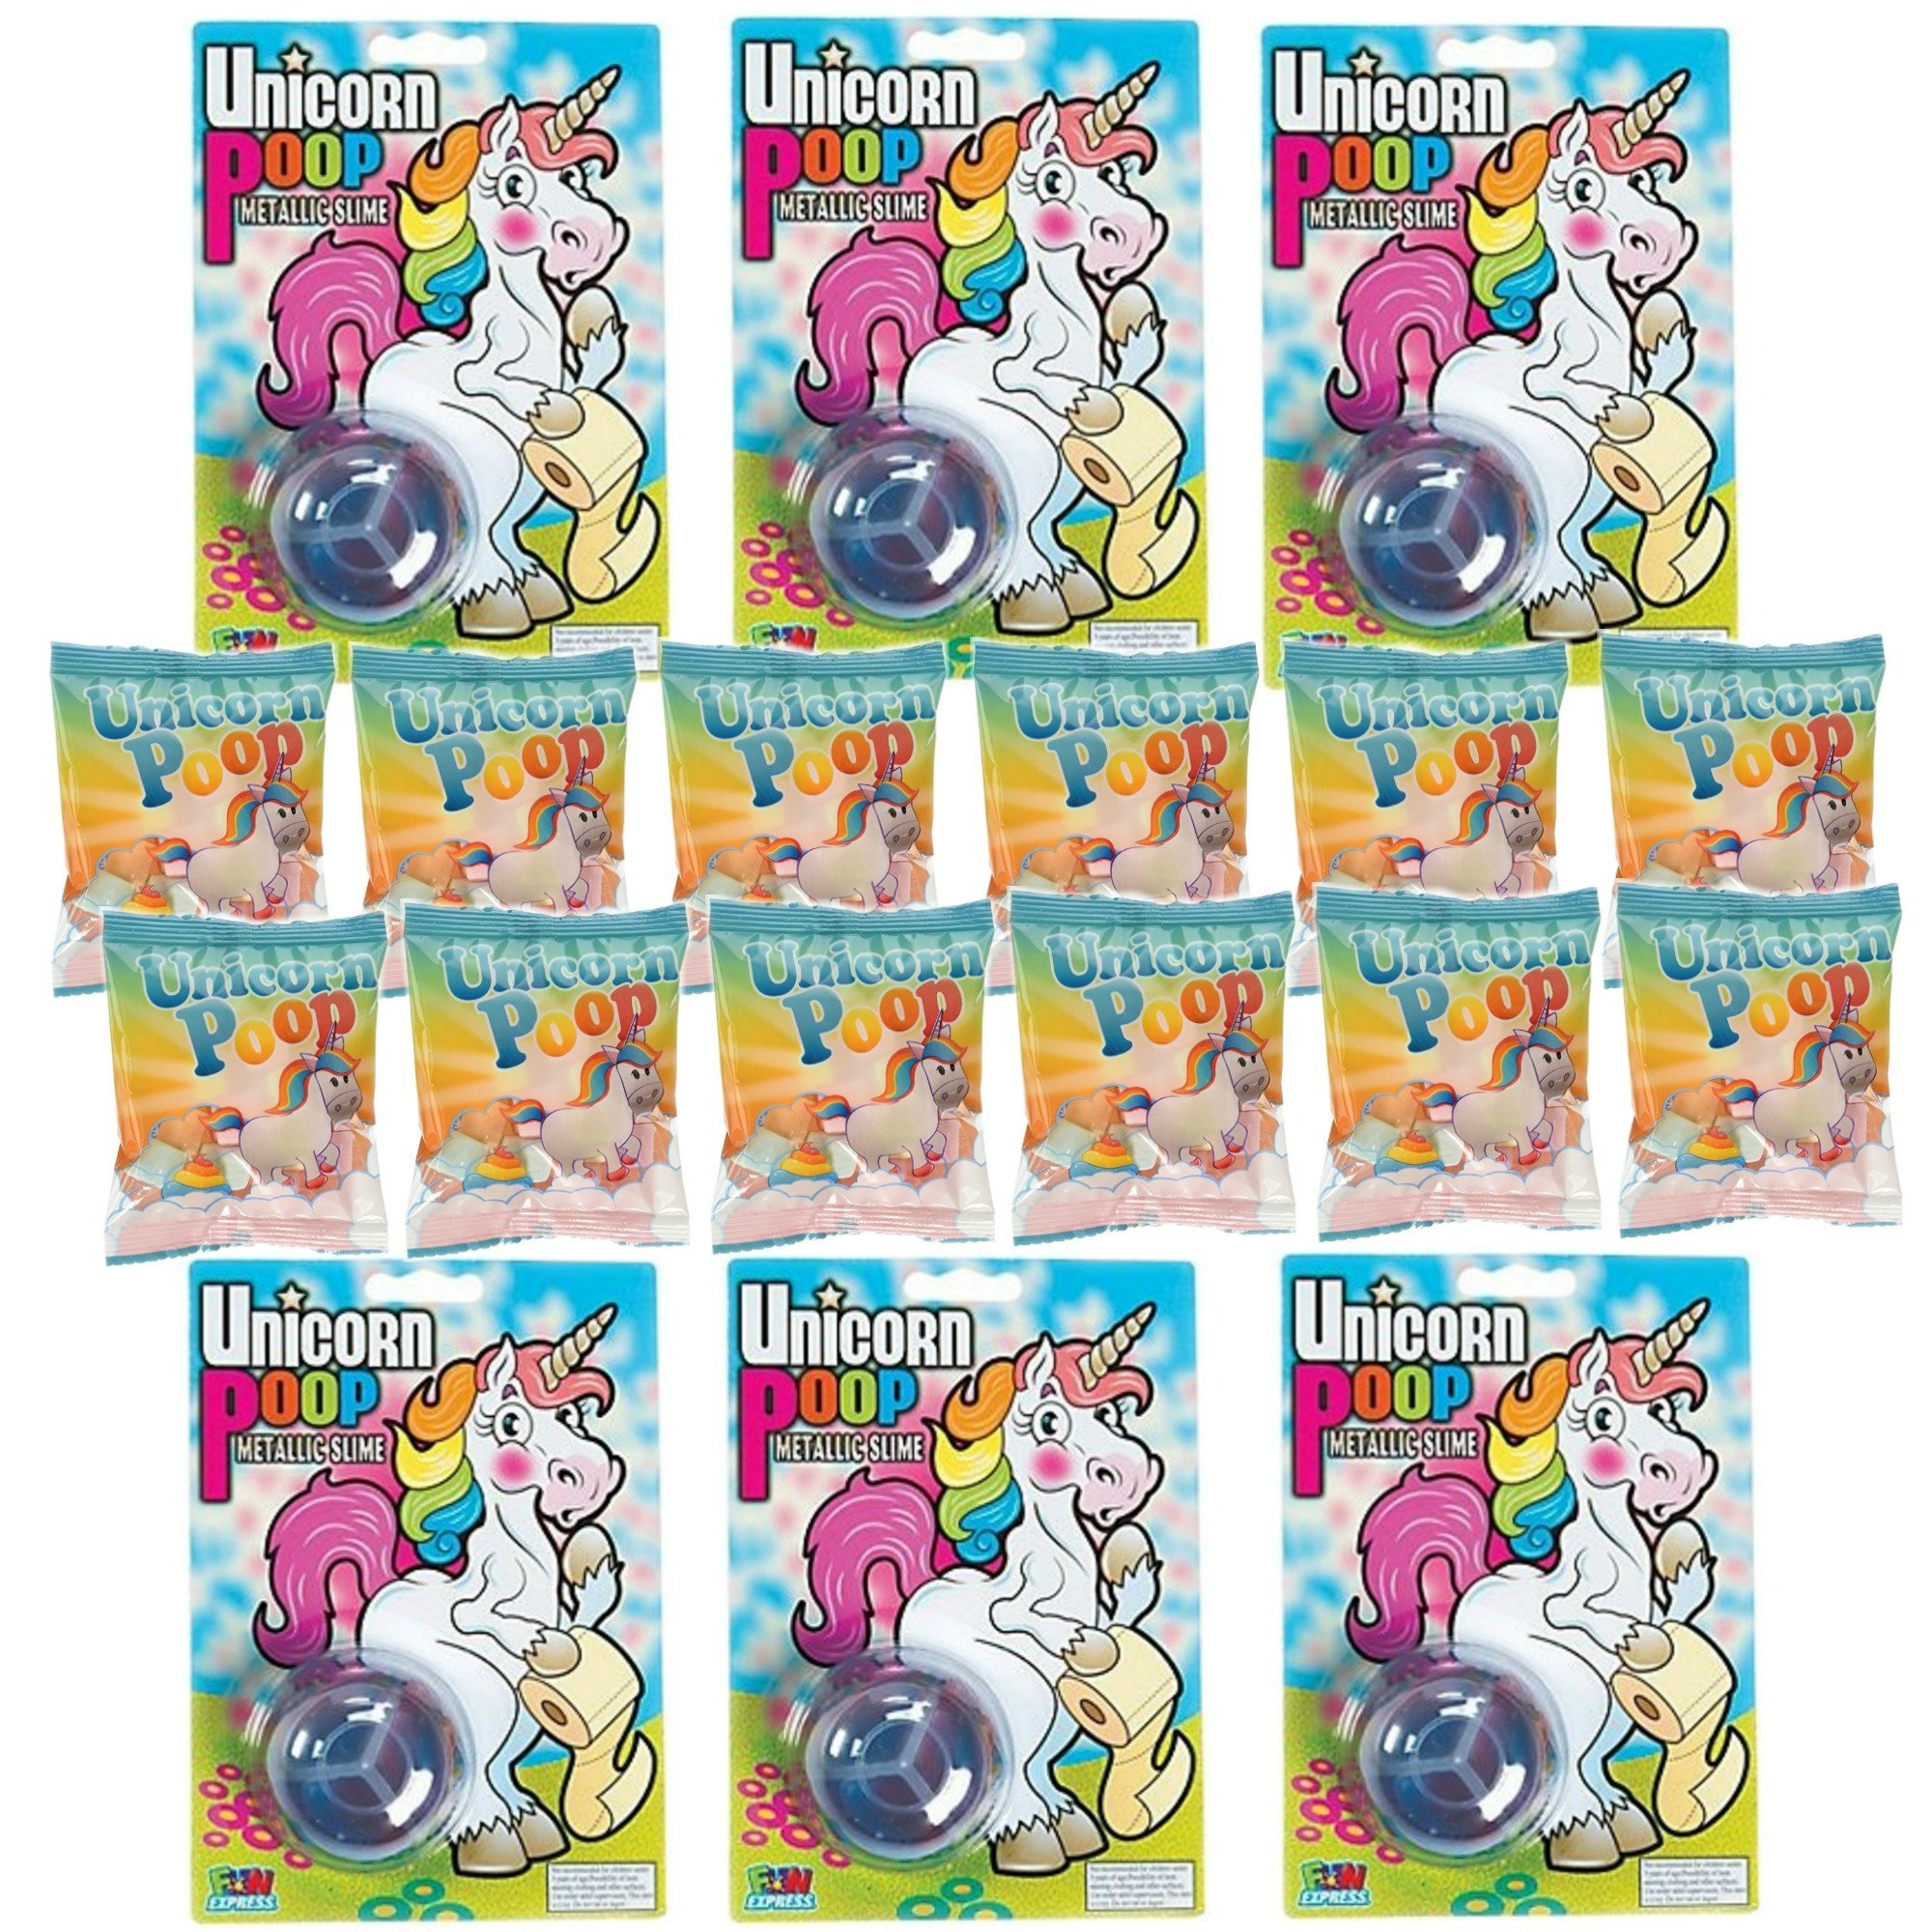 Unicorn Poop Marshmallow Candy Fun Pack (12 packs) + Unicorn Poop Metallic Slime (6 pcs), Unicorn Theme Birthday Party Favor Set, Treats Give Away or Gifts for Loot Bags or for Prizes (18 ct total)